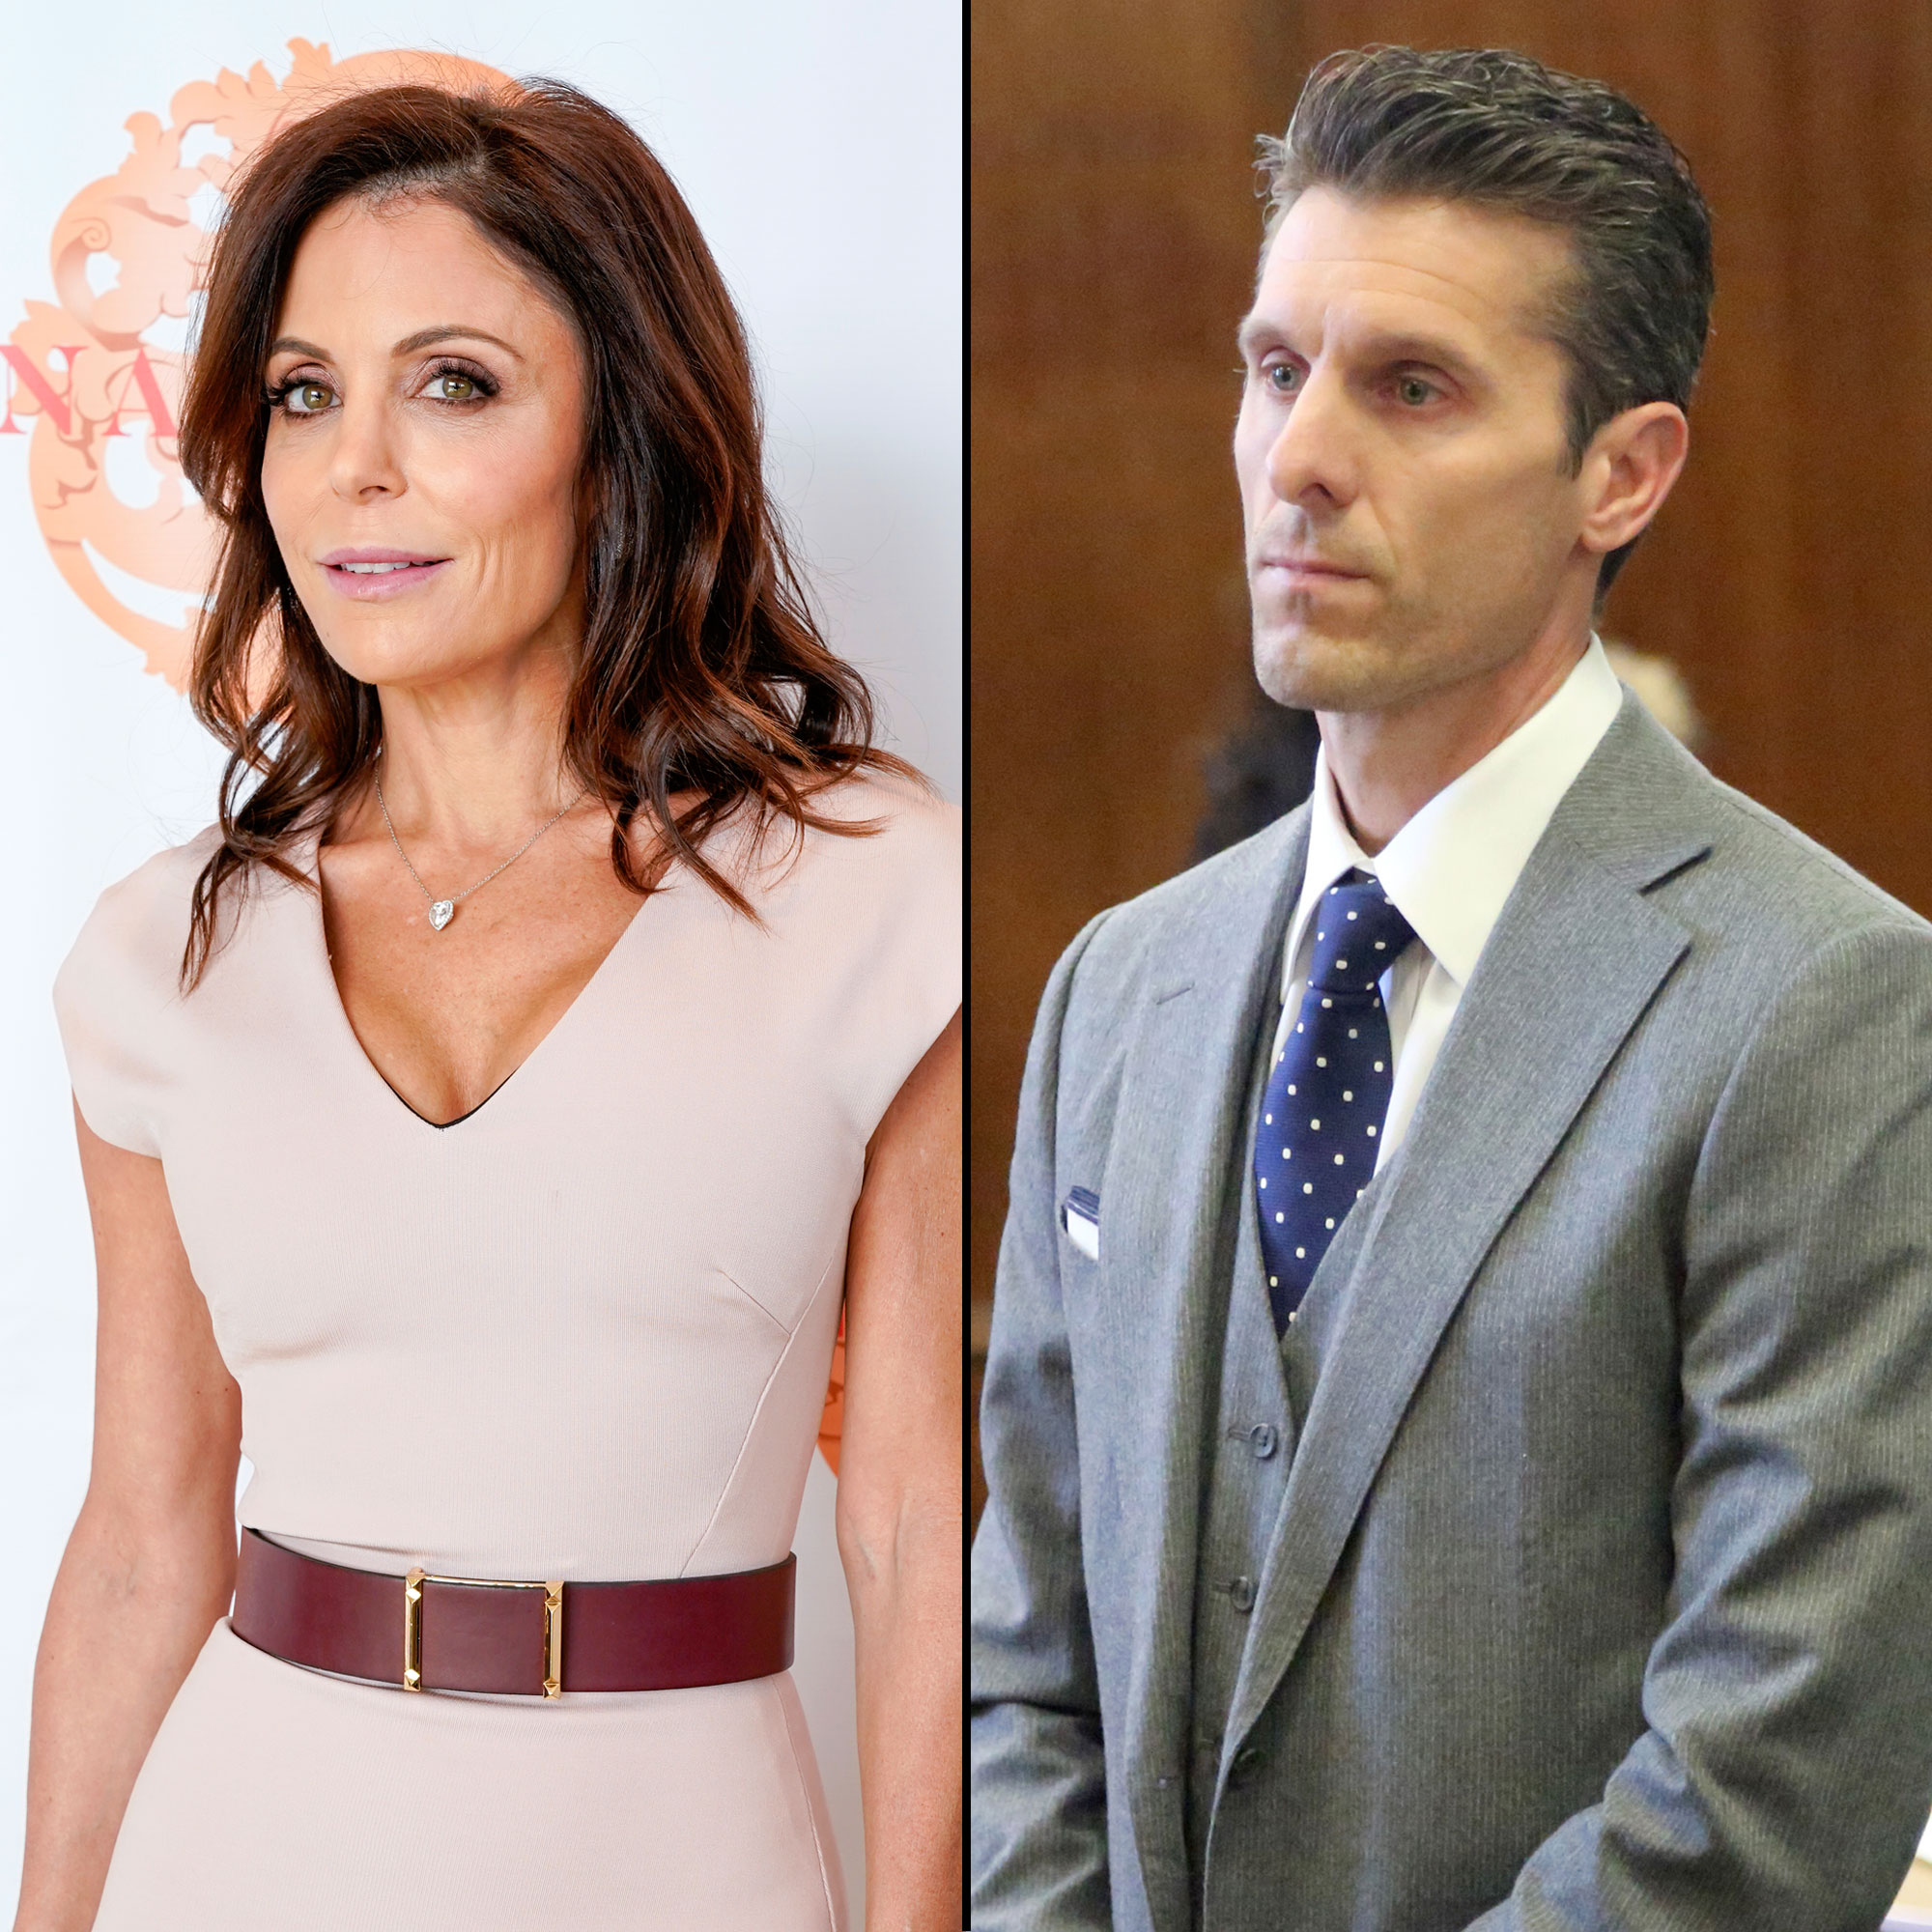 Bethenny Frankel and Jason Hoppy Cry in Court - Bethenny Frankel and Jason Hoppy